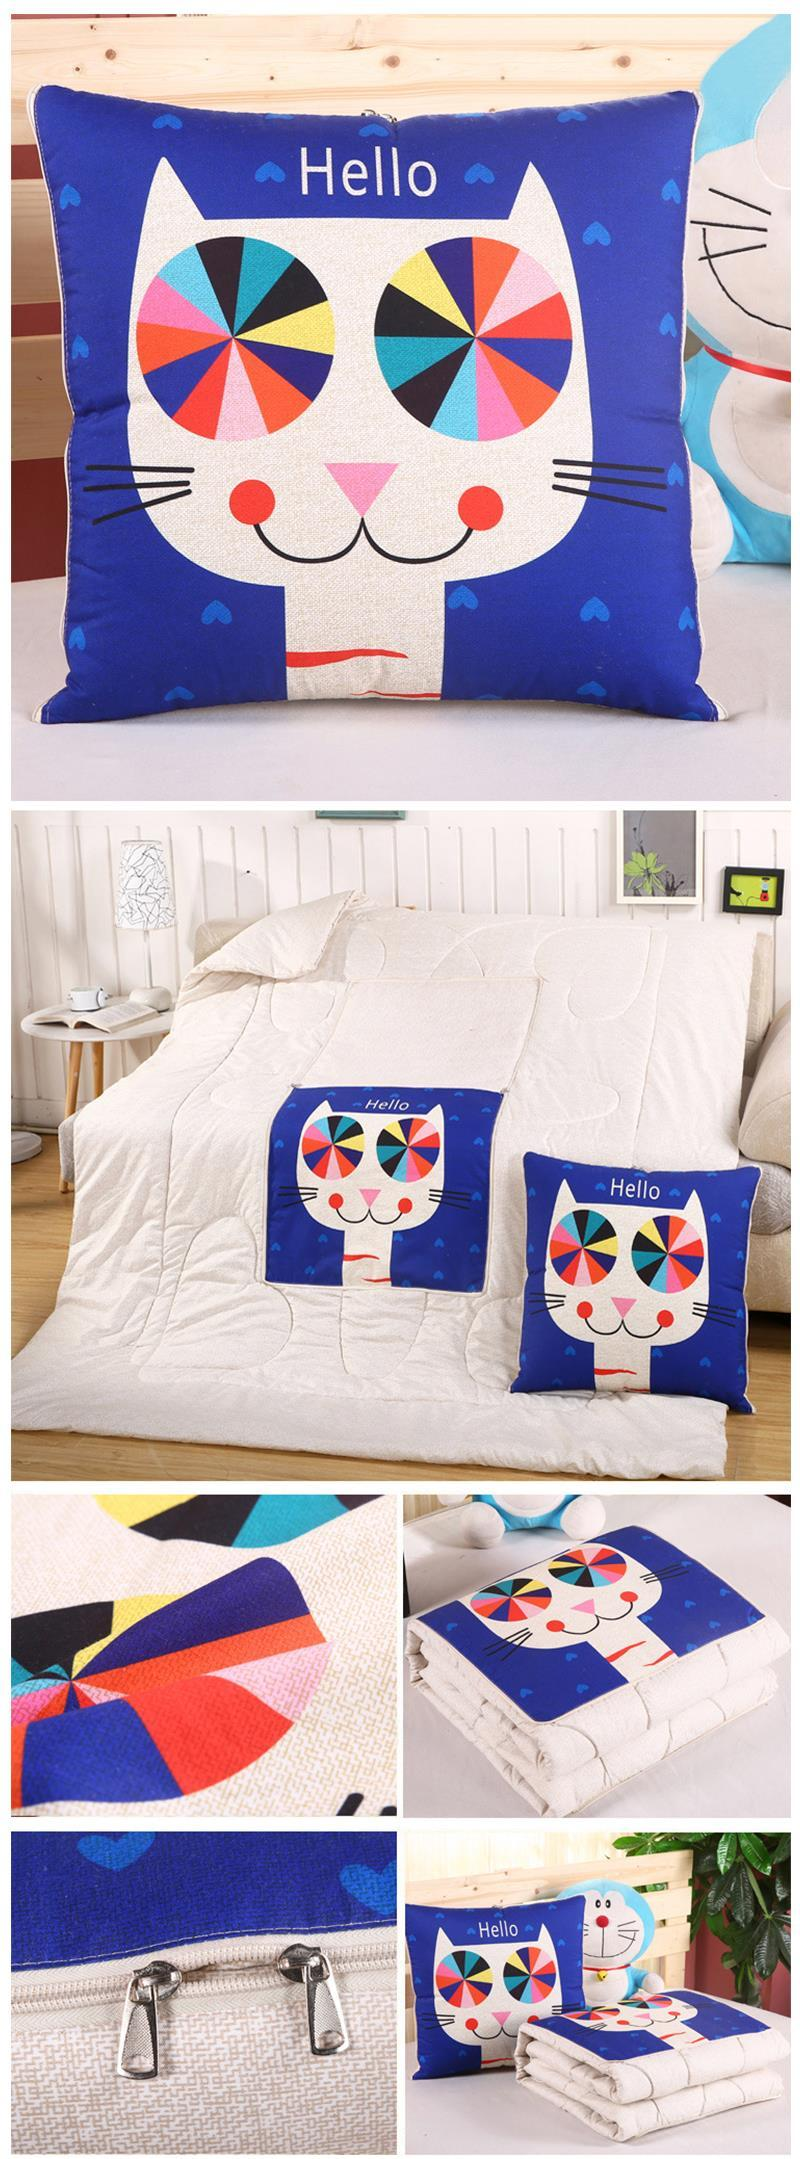 Dual Use Convertible Cushion Blanket - Foldable Pillow Lunch Break Quilt